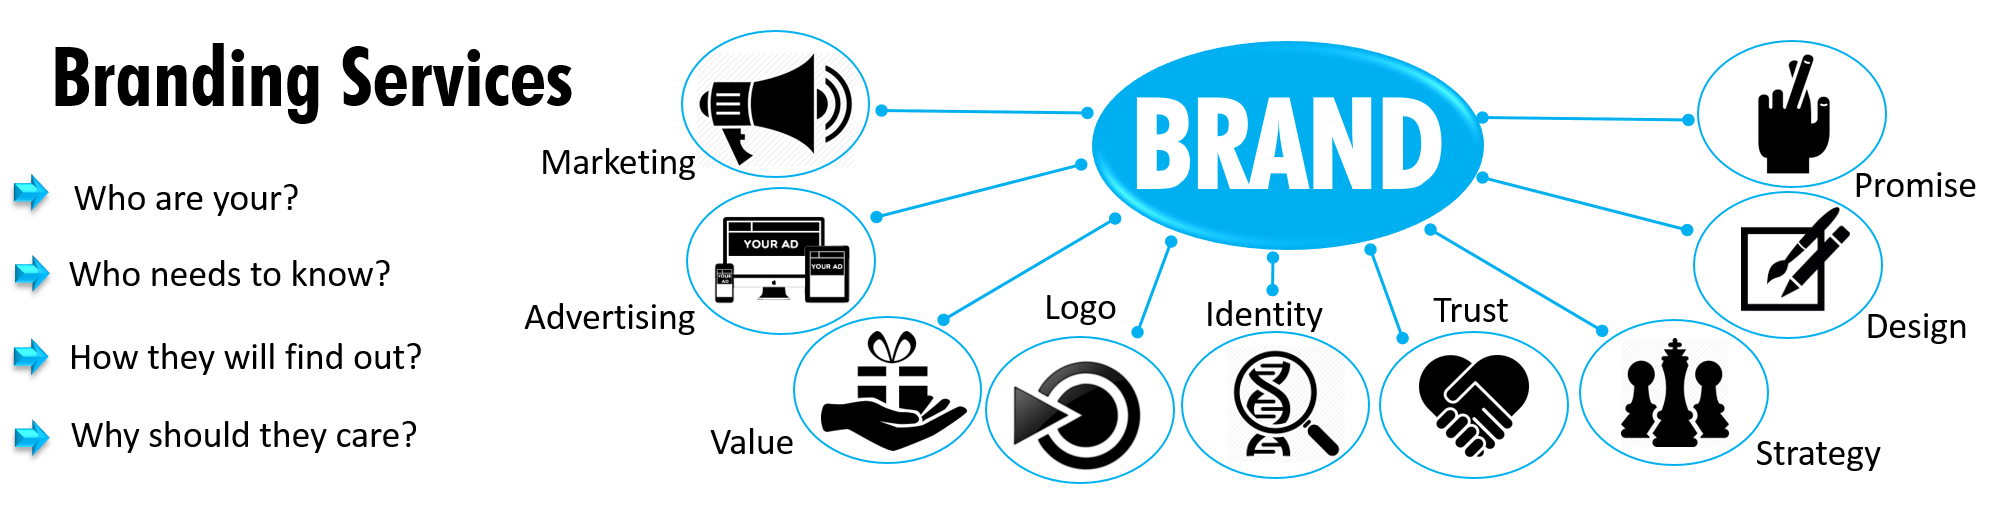 Branding Services, brand service, branding strategy